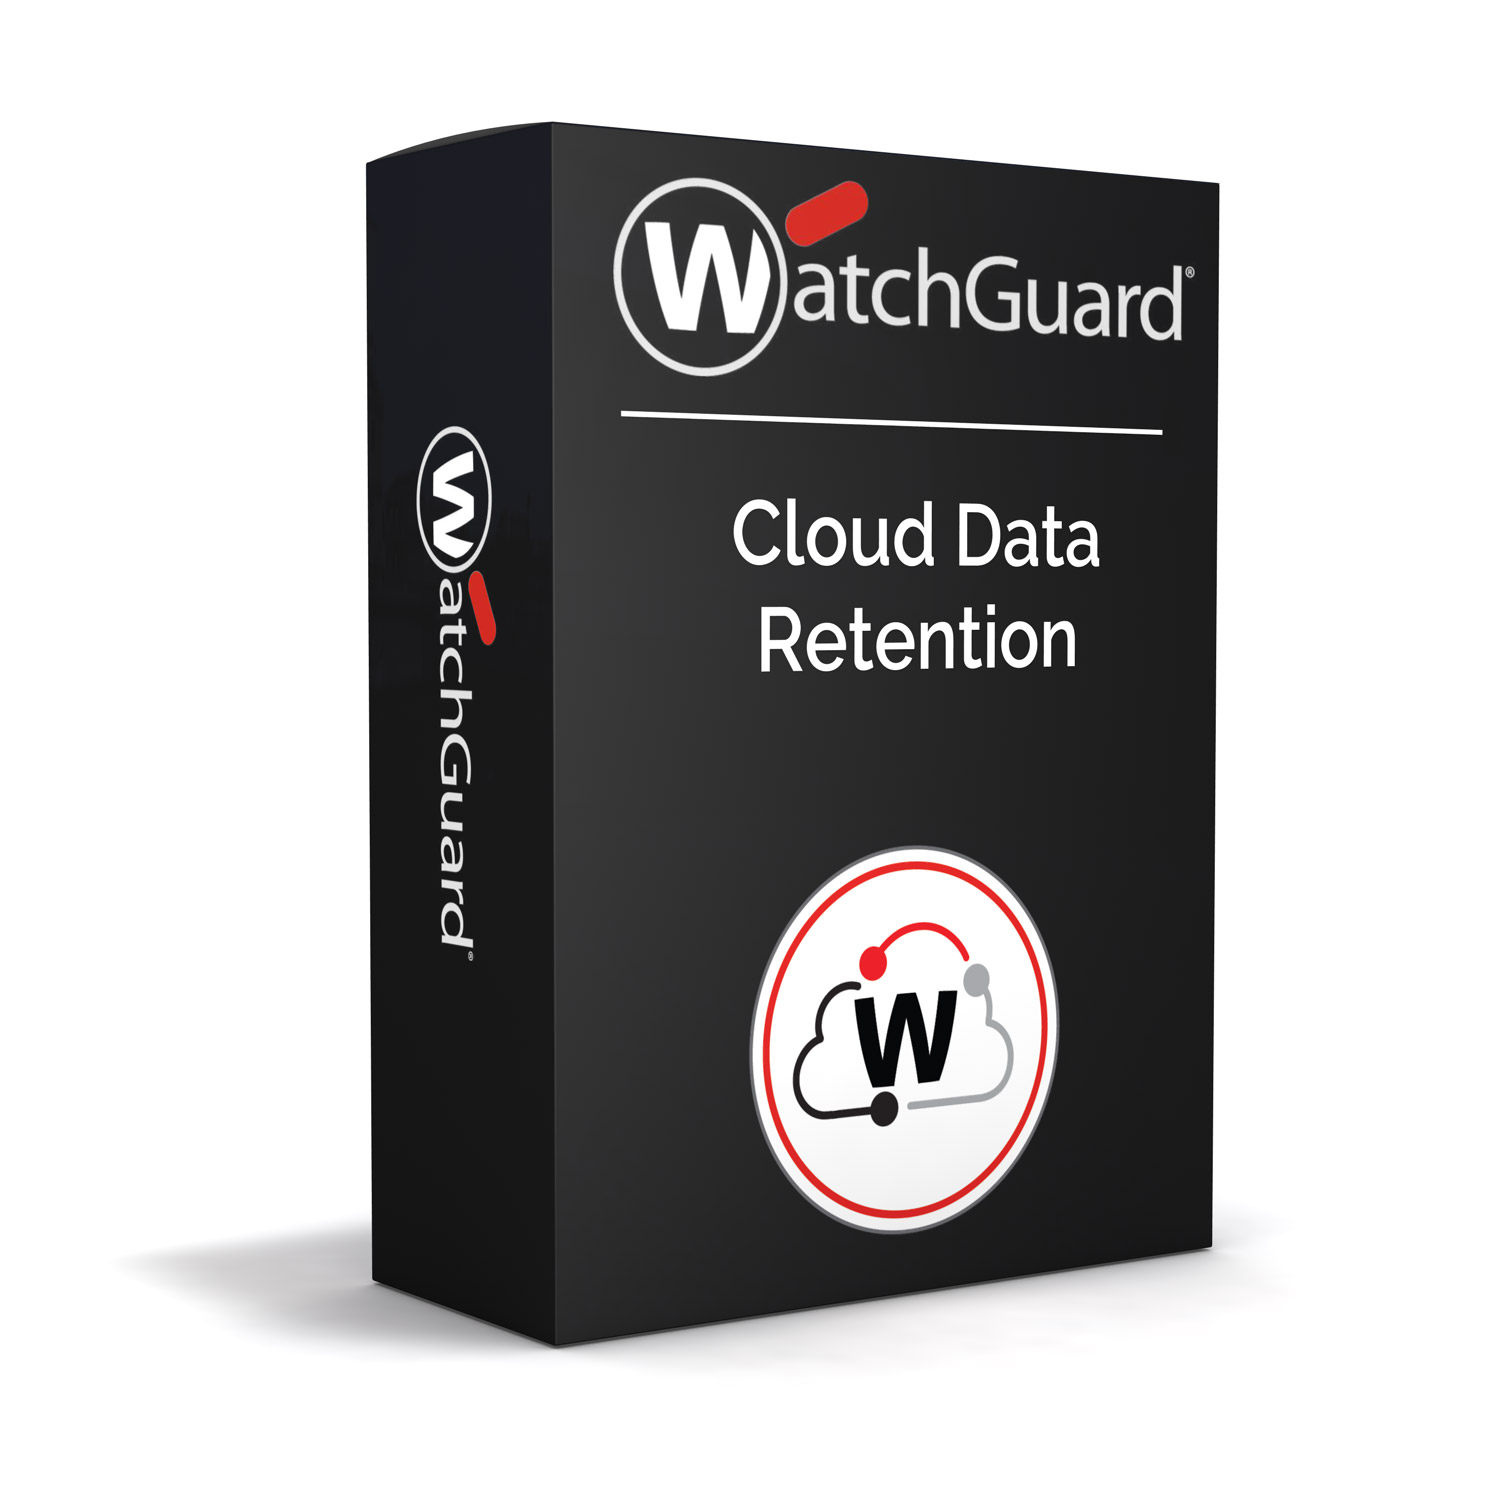 WatchGuard Cloud 1-month data retention for FireboxV Large - 3-yr